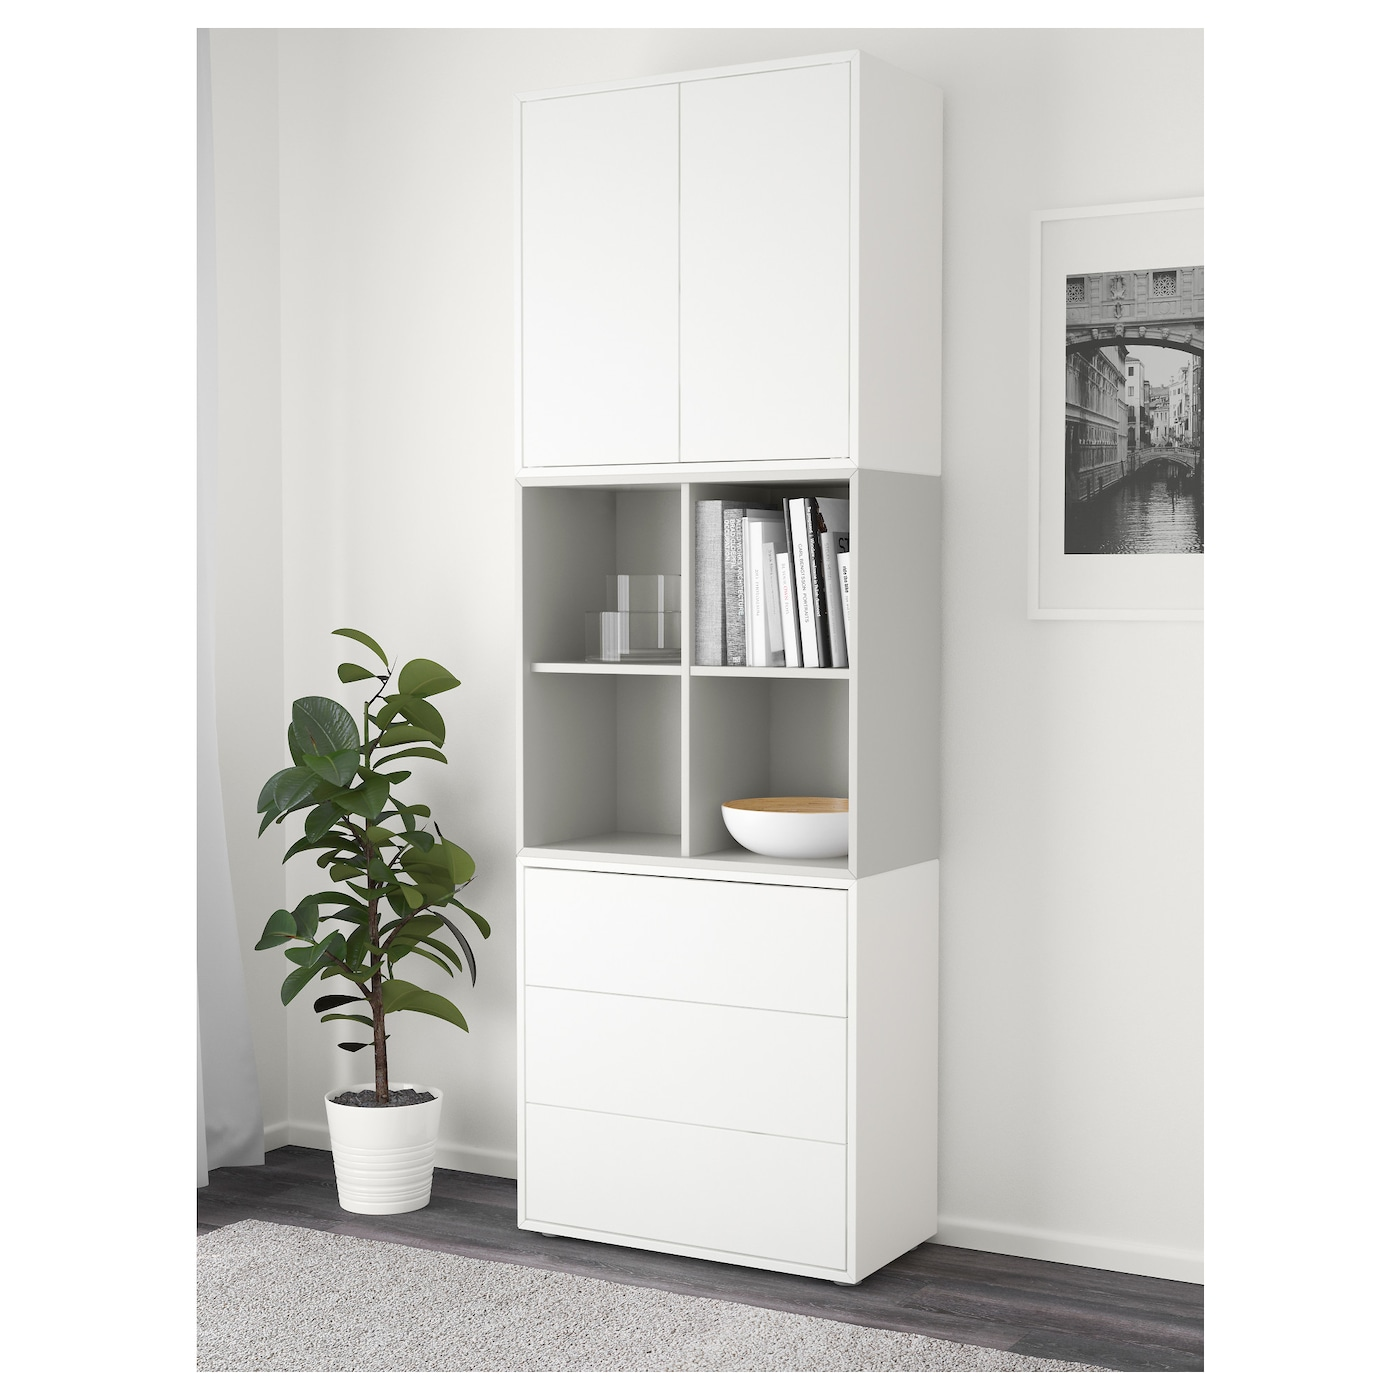 eket cabinet combination with feet white light grey 70 x 35 x 212 cm ikea. Black Bedroom Furniture Sets. Home Design Ideas